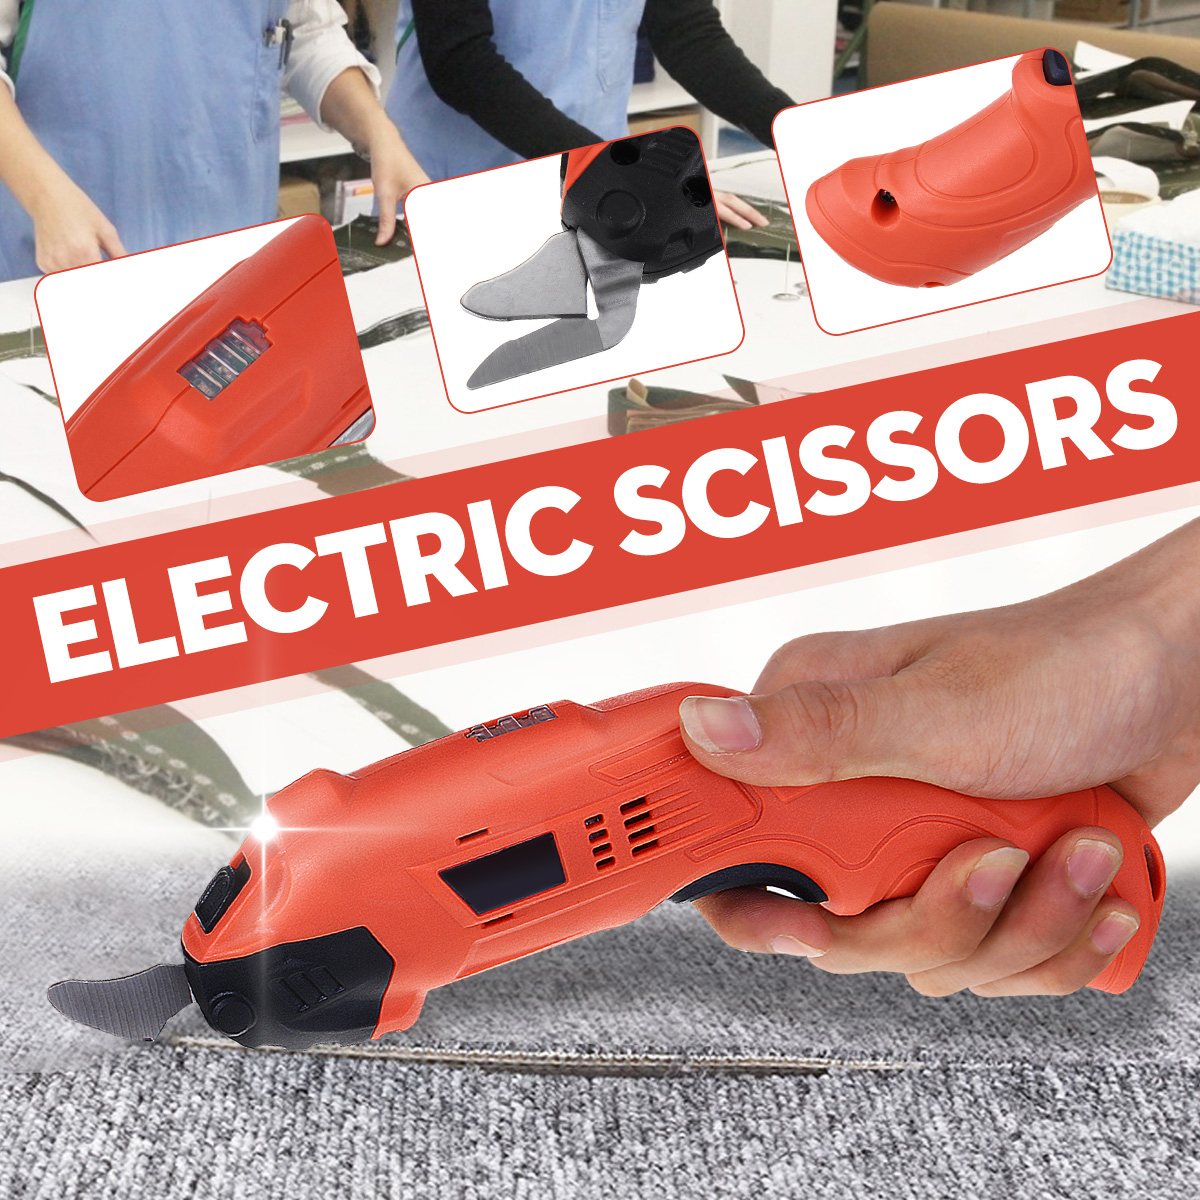 220V Electric Cordless Scissors Tailors Cutter Cutting Machine LED Light With 2 Blades